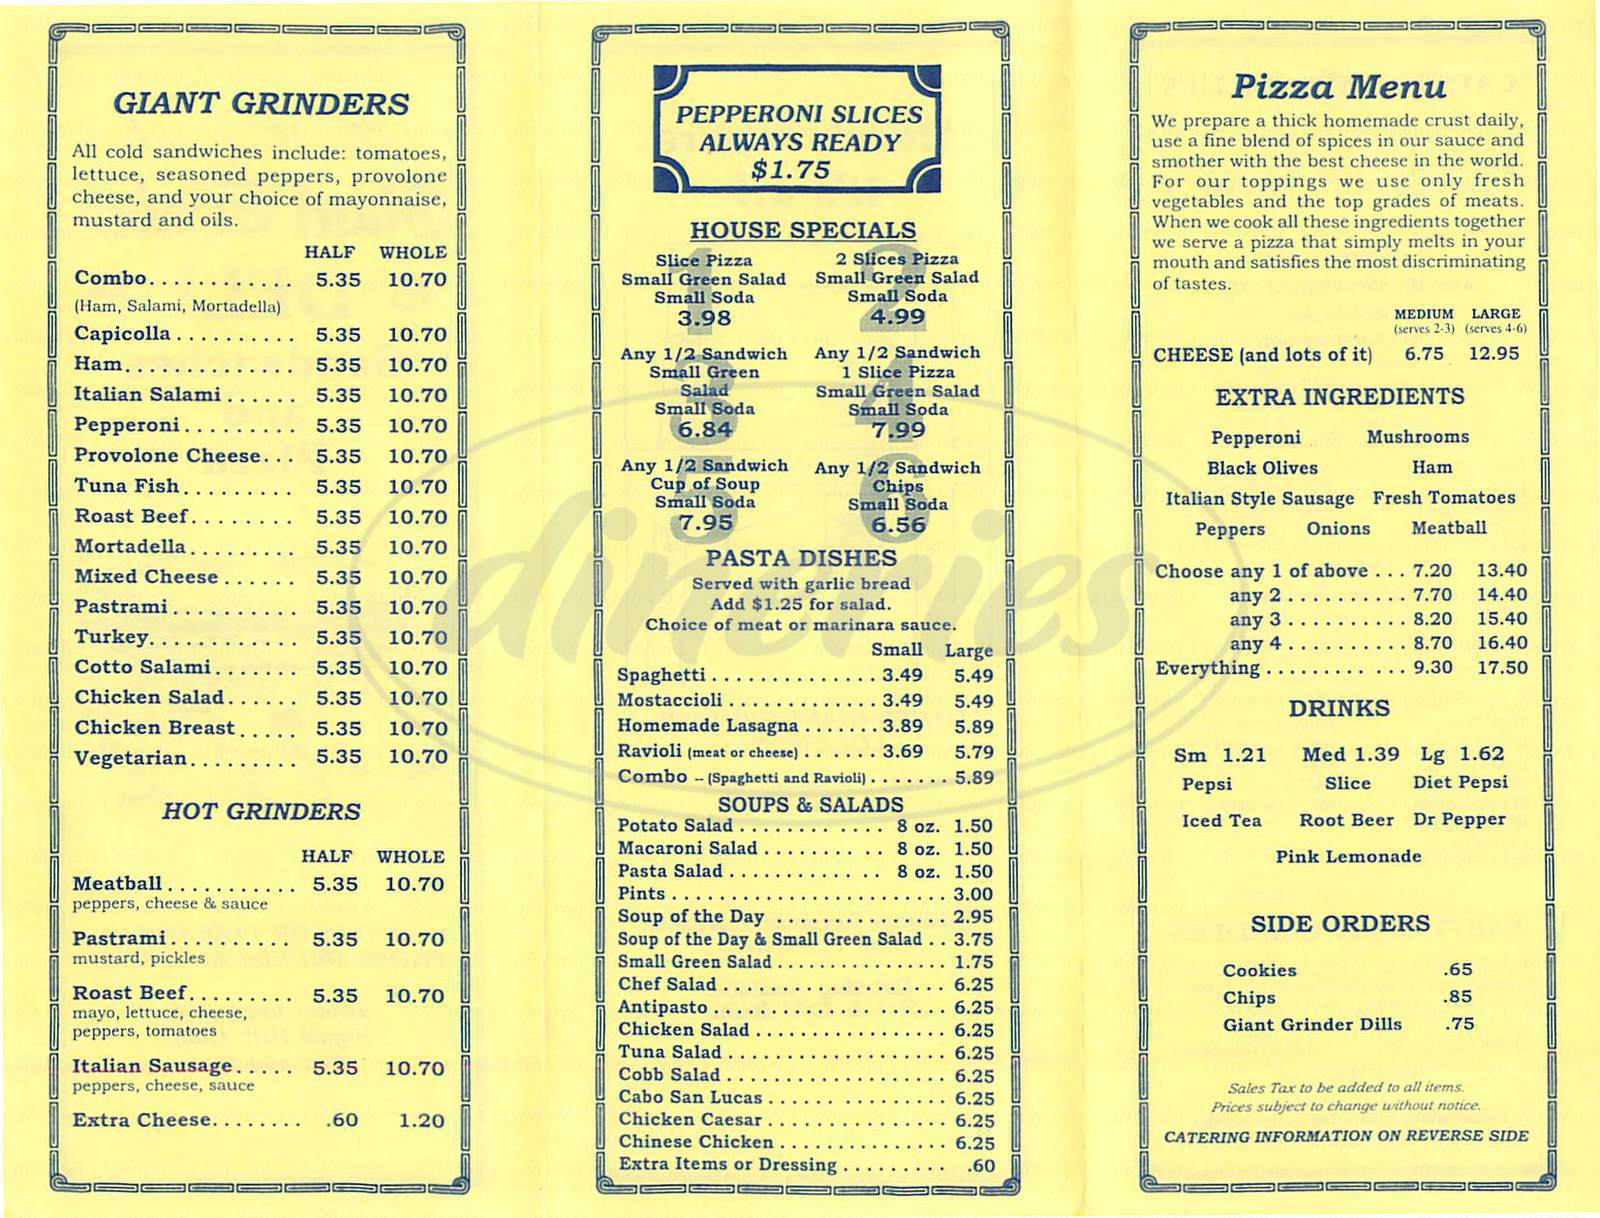 menu for The Giant Grinder Deli